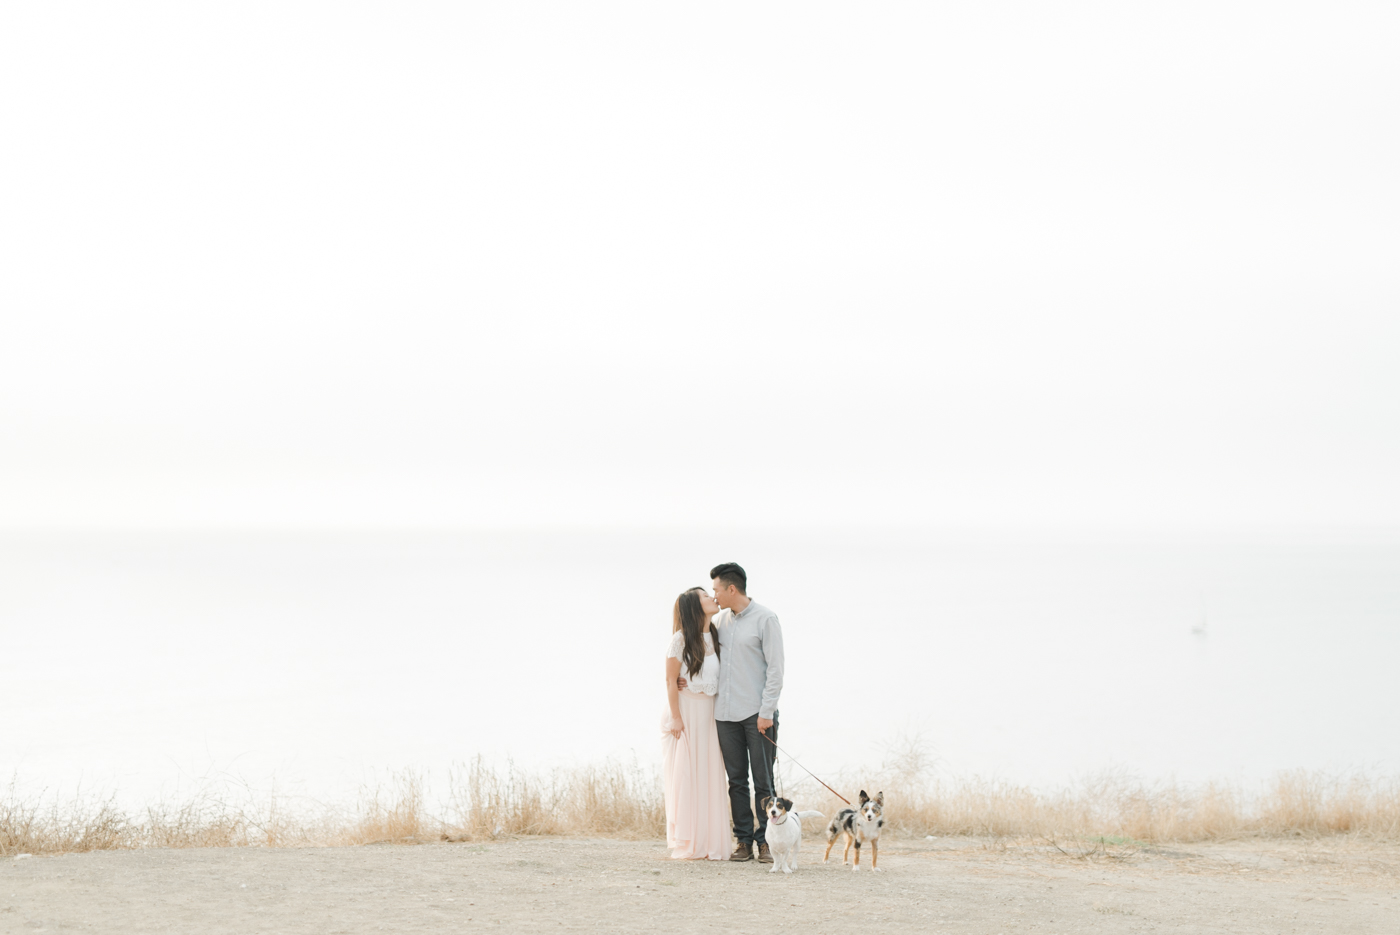 Palos_Verdes_Beach_Engagement_Session_Los_Angles_Fine_Art_Wedding_Photographer-3.jpg